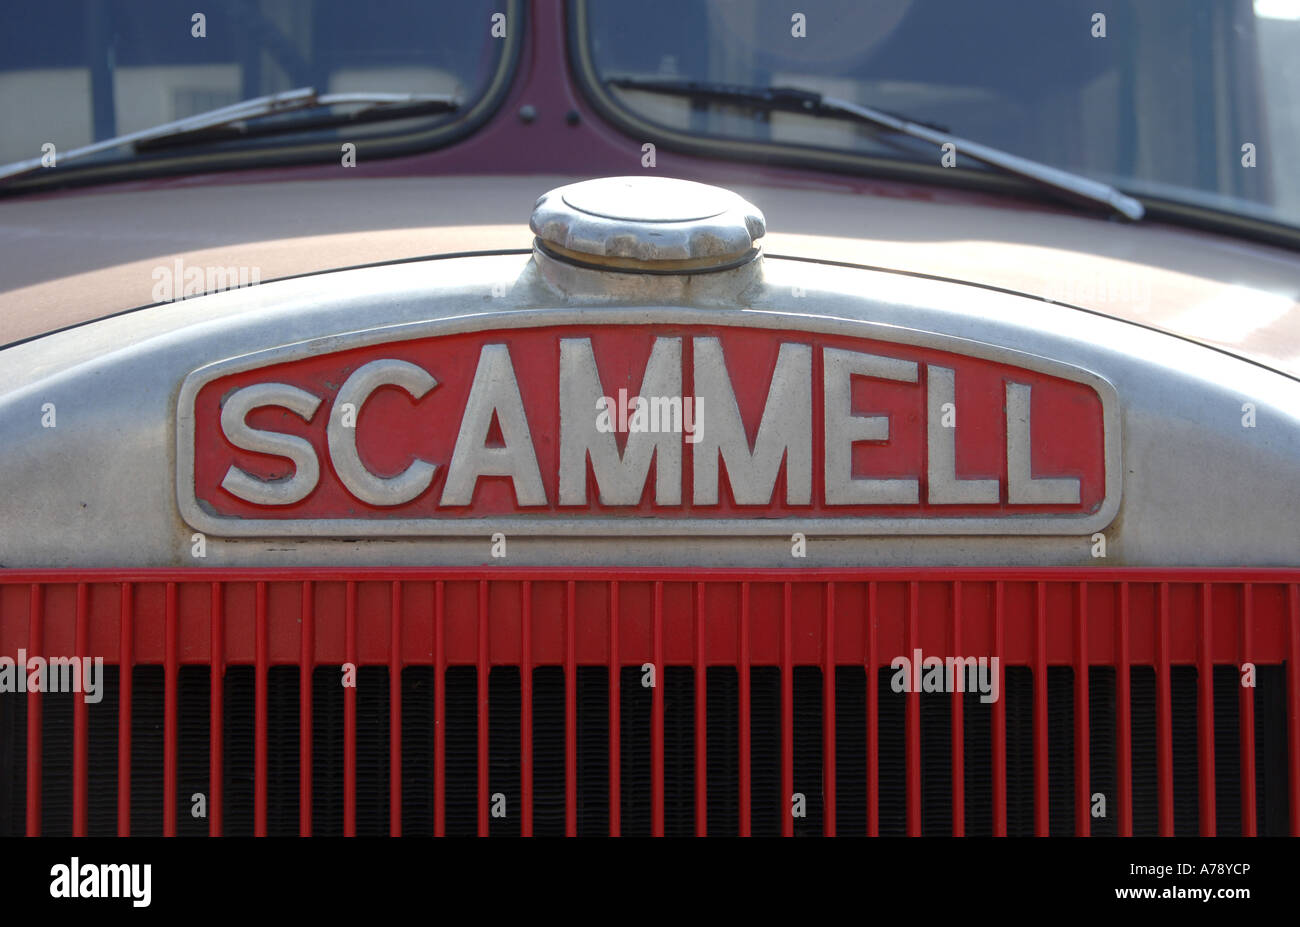 Scammell truck name badge - Stock Image